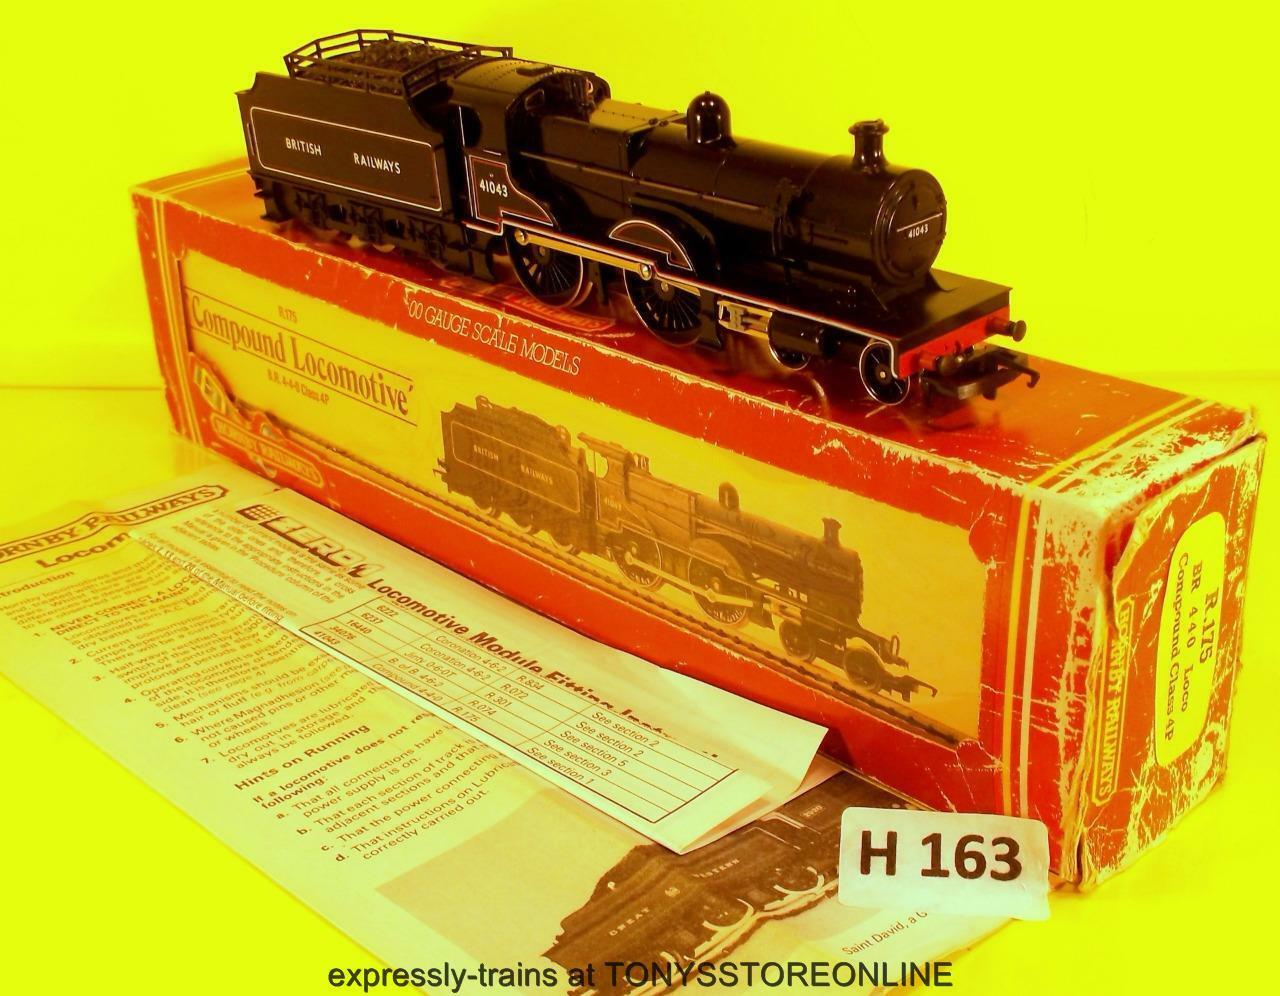 H163) hornby oo r175 cl 4p negro compound 4-4-0 loco nr xclnt in ded box